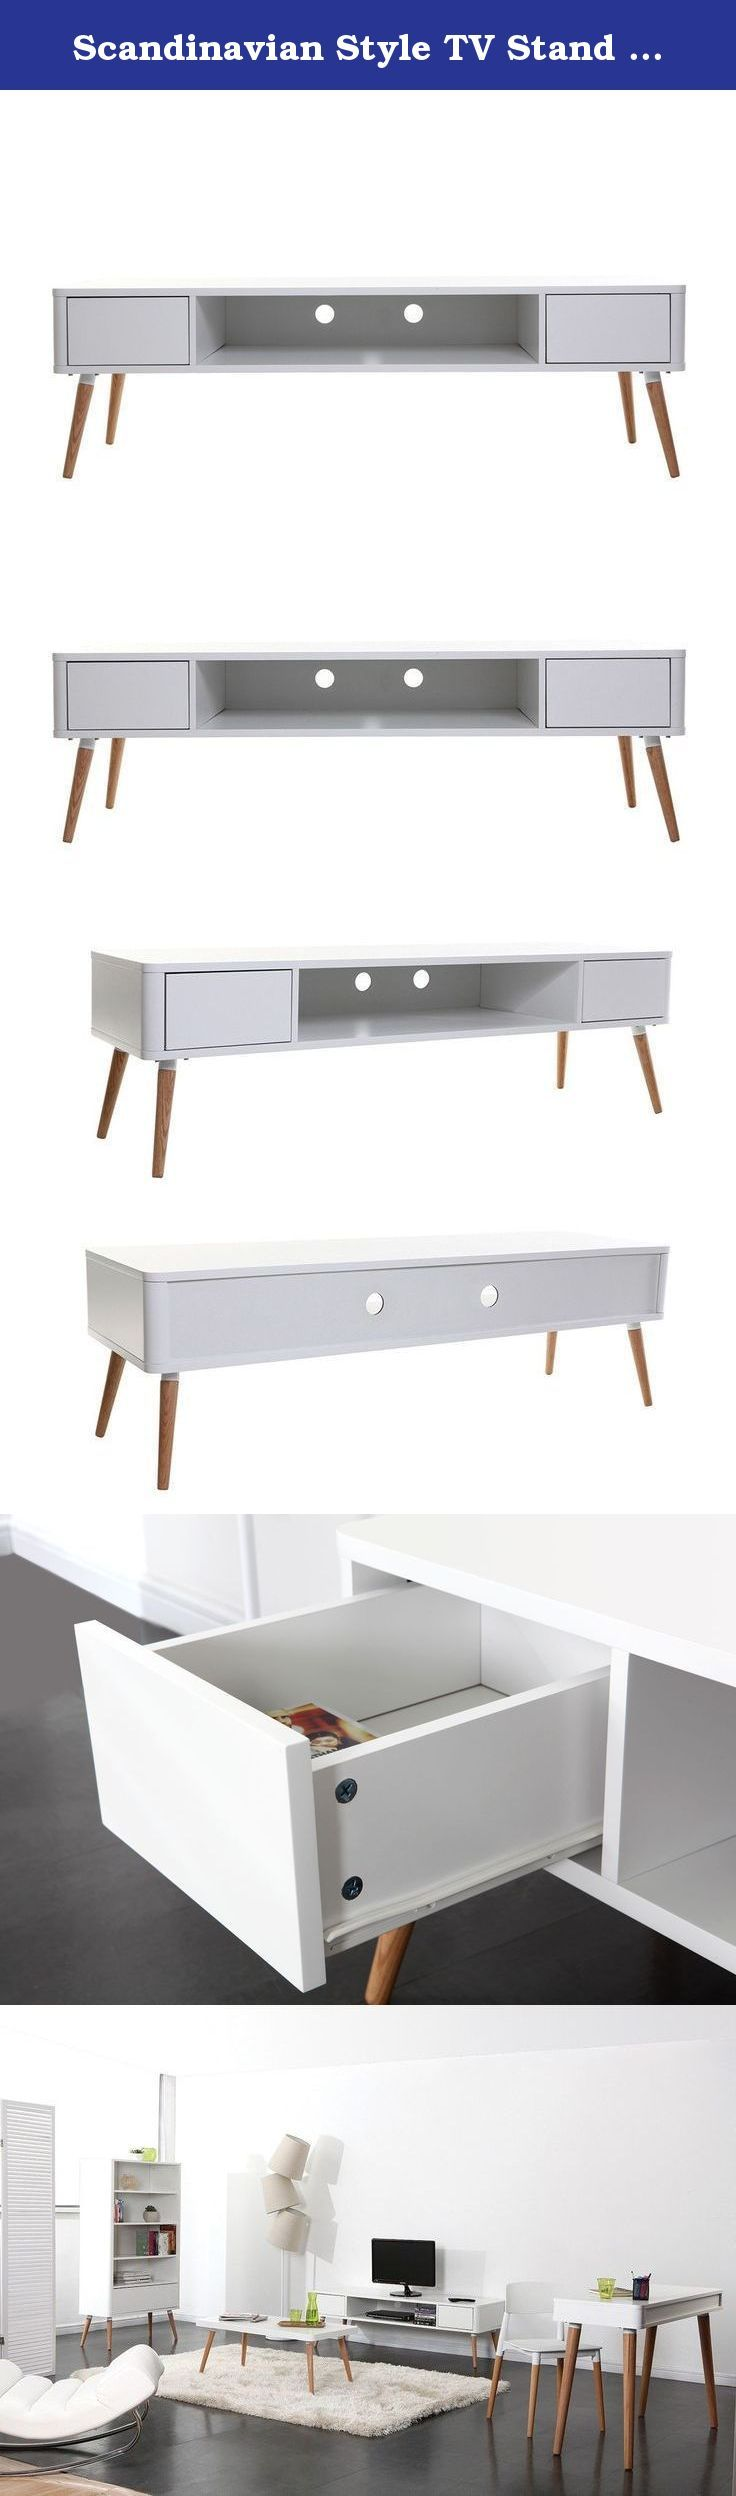 Scandinavian Style TV Stand TOTEM. Discover the TOTEM collection with this TV stand, reminiscent of mid-century modern style. The clean lines of this Miliboo-exclusive TV stand bring a retro touch to any interior. It is also very practical, with an open shelf and two drawers to maximize storage space. With its MDF structure and oak legs, it is a durable and lasting piece of furniture. Cleaning instructions: wipe down with a soft, dry cloth. Warning: using a rough cloth or an abrasive…